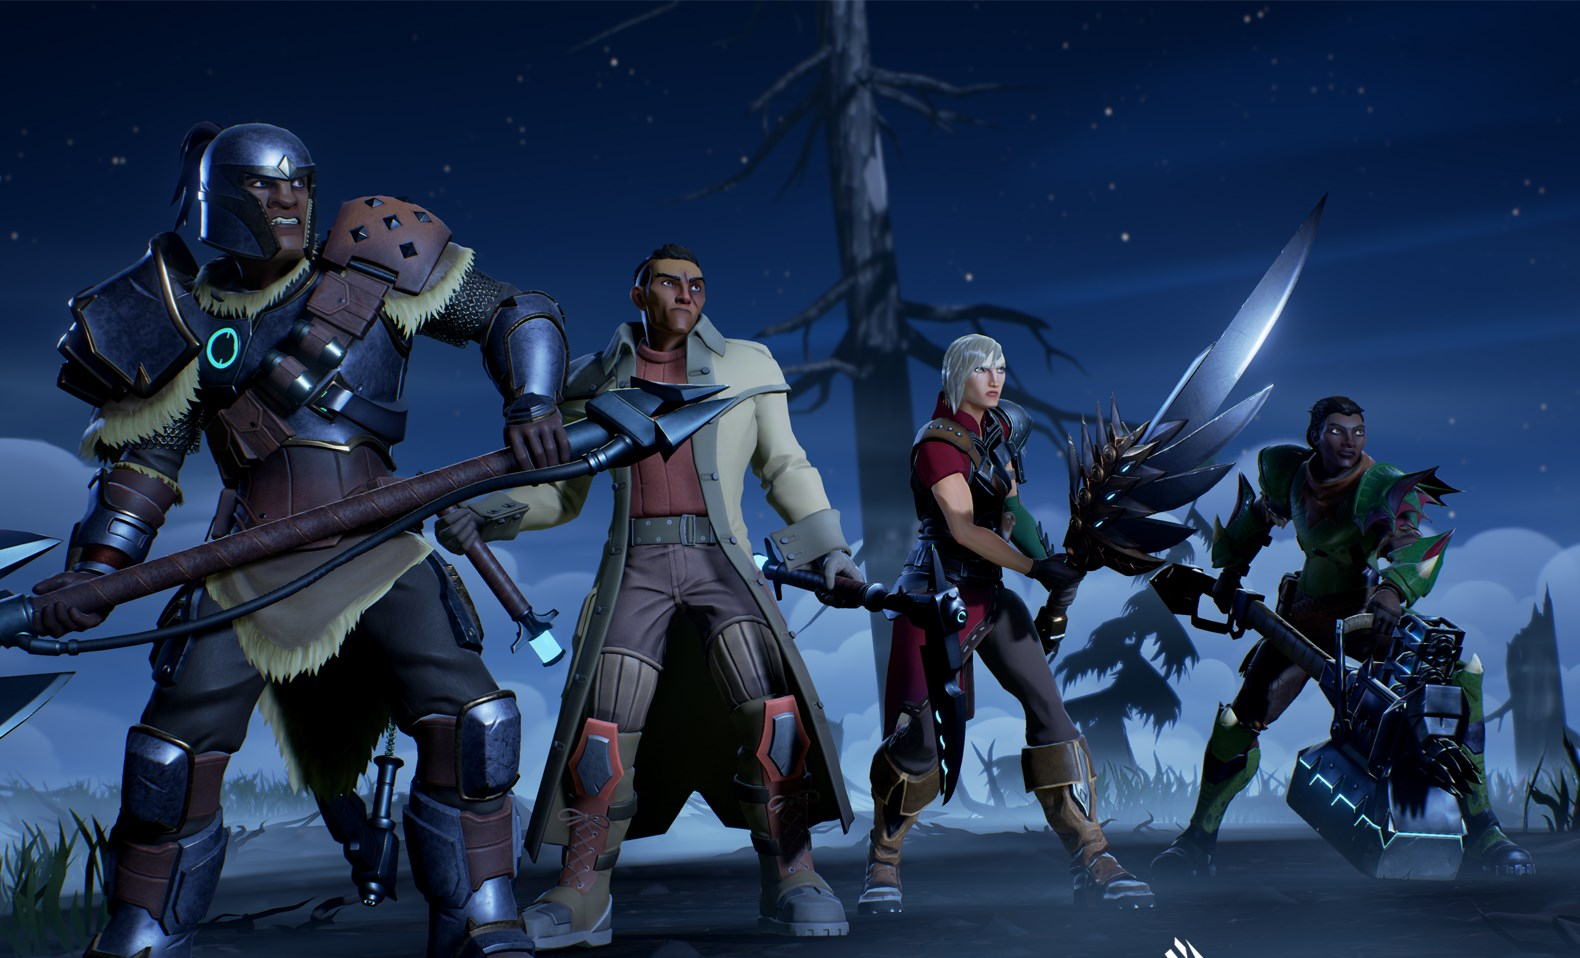 Dauntless is too simple and slight for Monster Hunter fans | PC Gamer